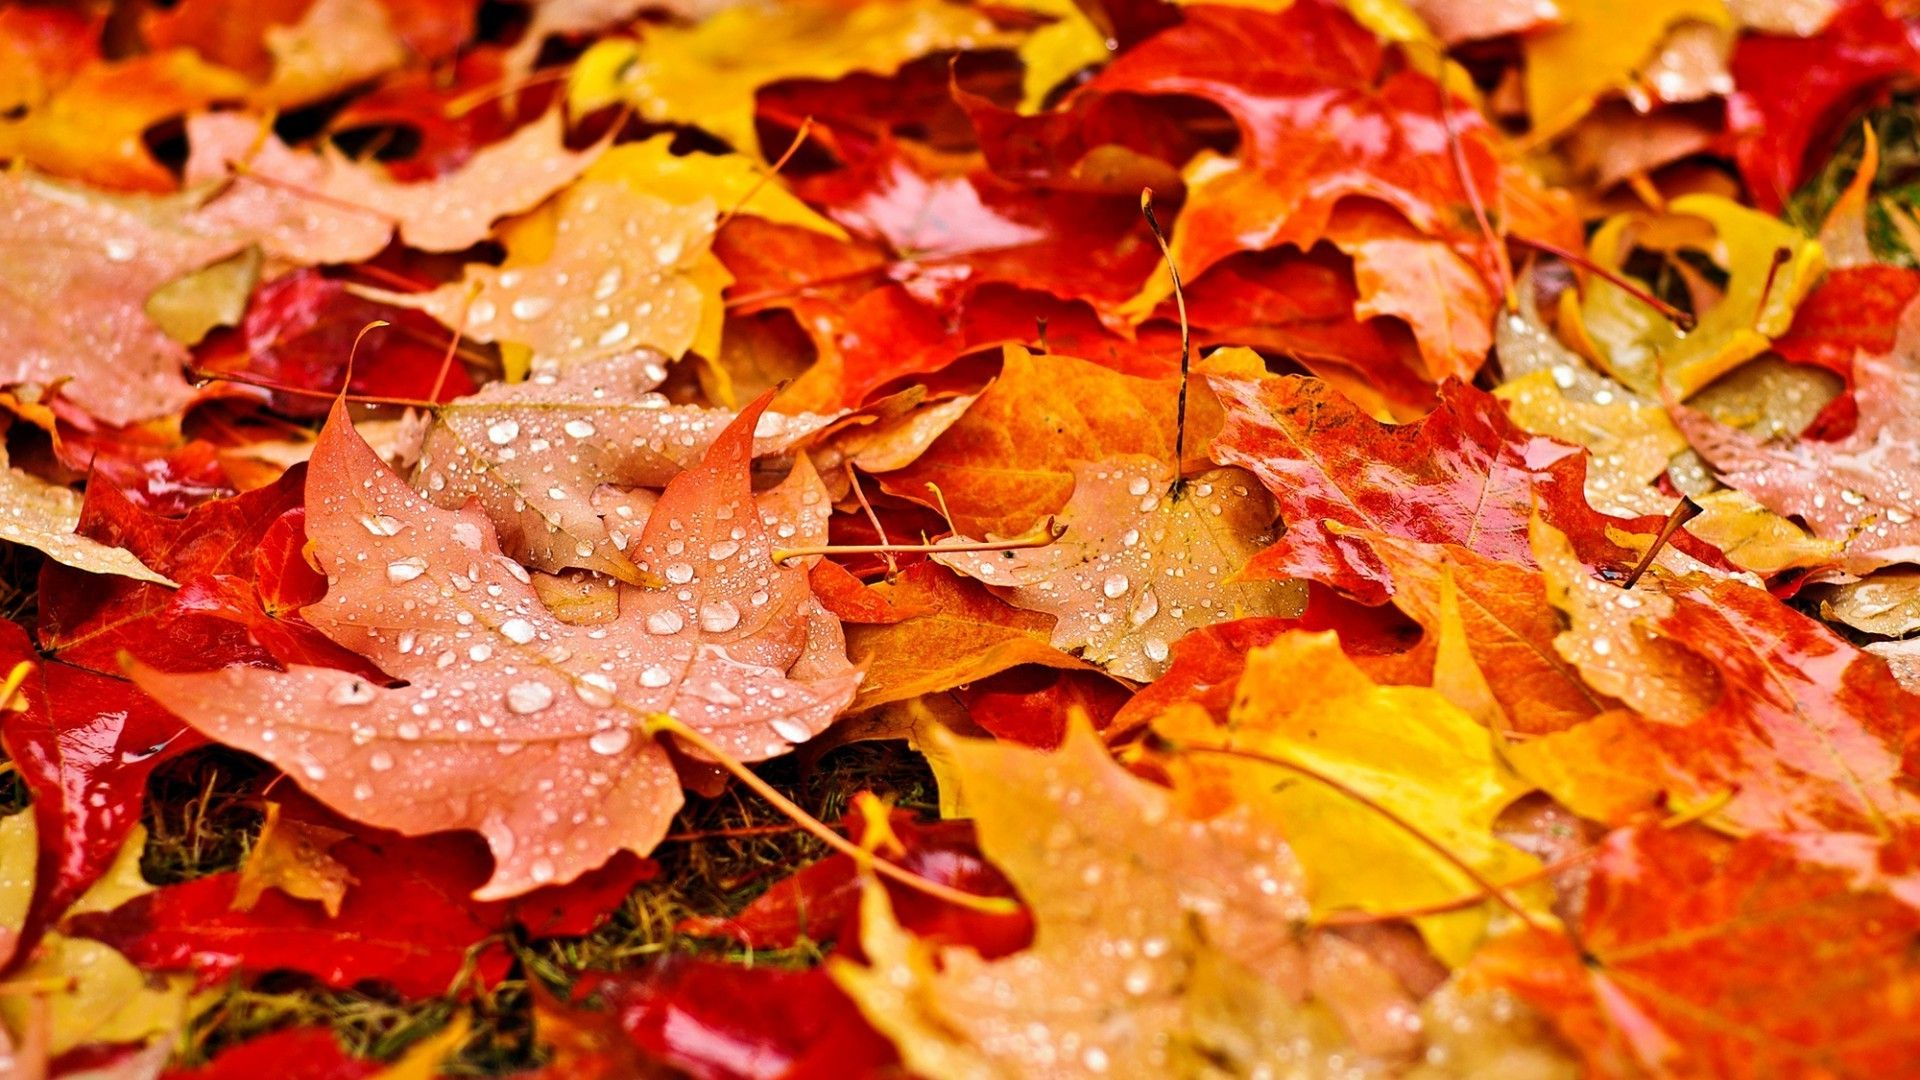 Download Fall Leaves Wallpapers Hd Resolution For Iphone Pc Desktop Android Or Mac Pumpkin Autumn Leaves Wallpaper Fall Wallpaper Desktop Wallpaper Fall